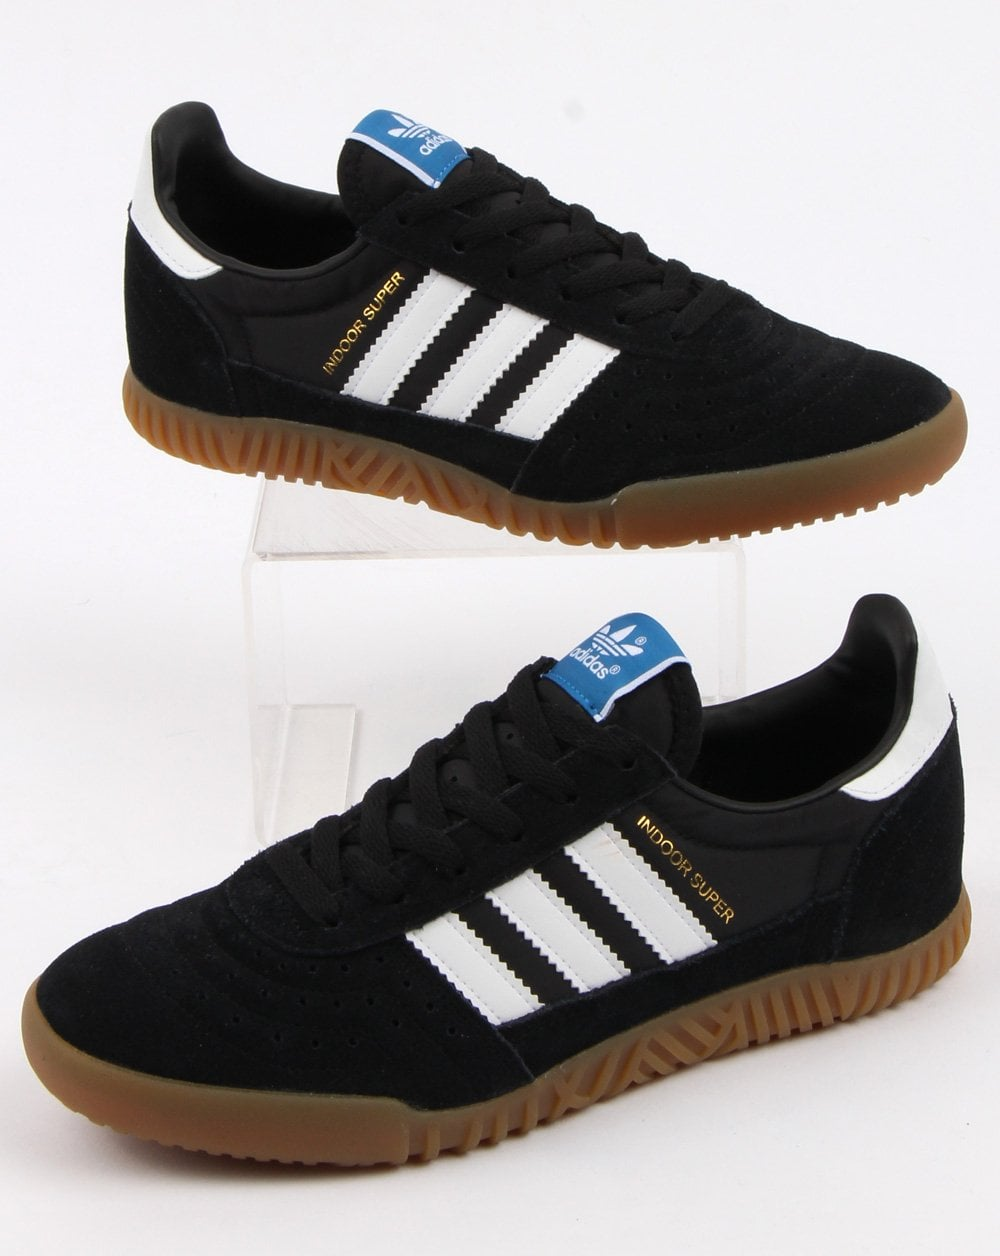 3121725fc38f adidas Trainers Adidas Indoor Super Trainers Black White Gum